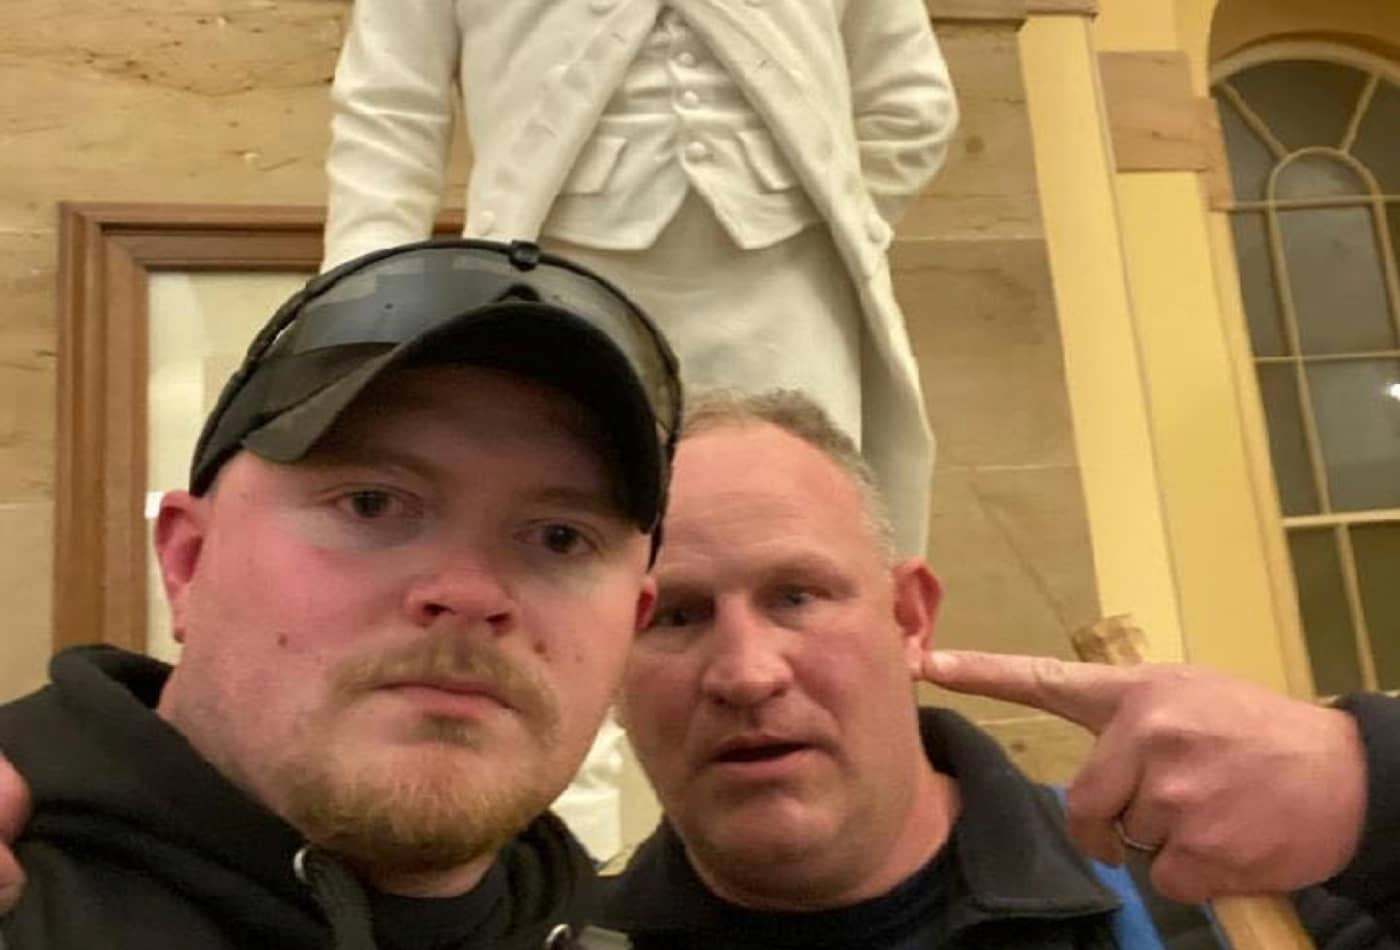 Virginia National Guard corporal Jacob Fracker and fellow police officer charged in U.S. Capitol riot